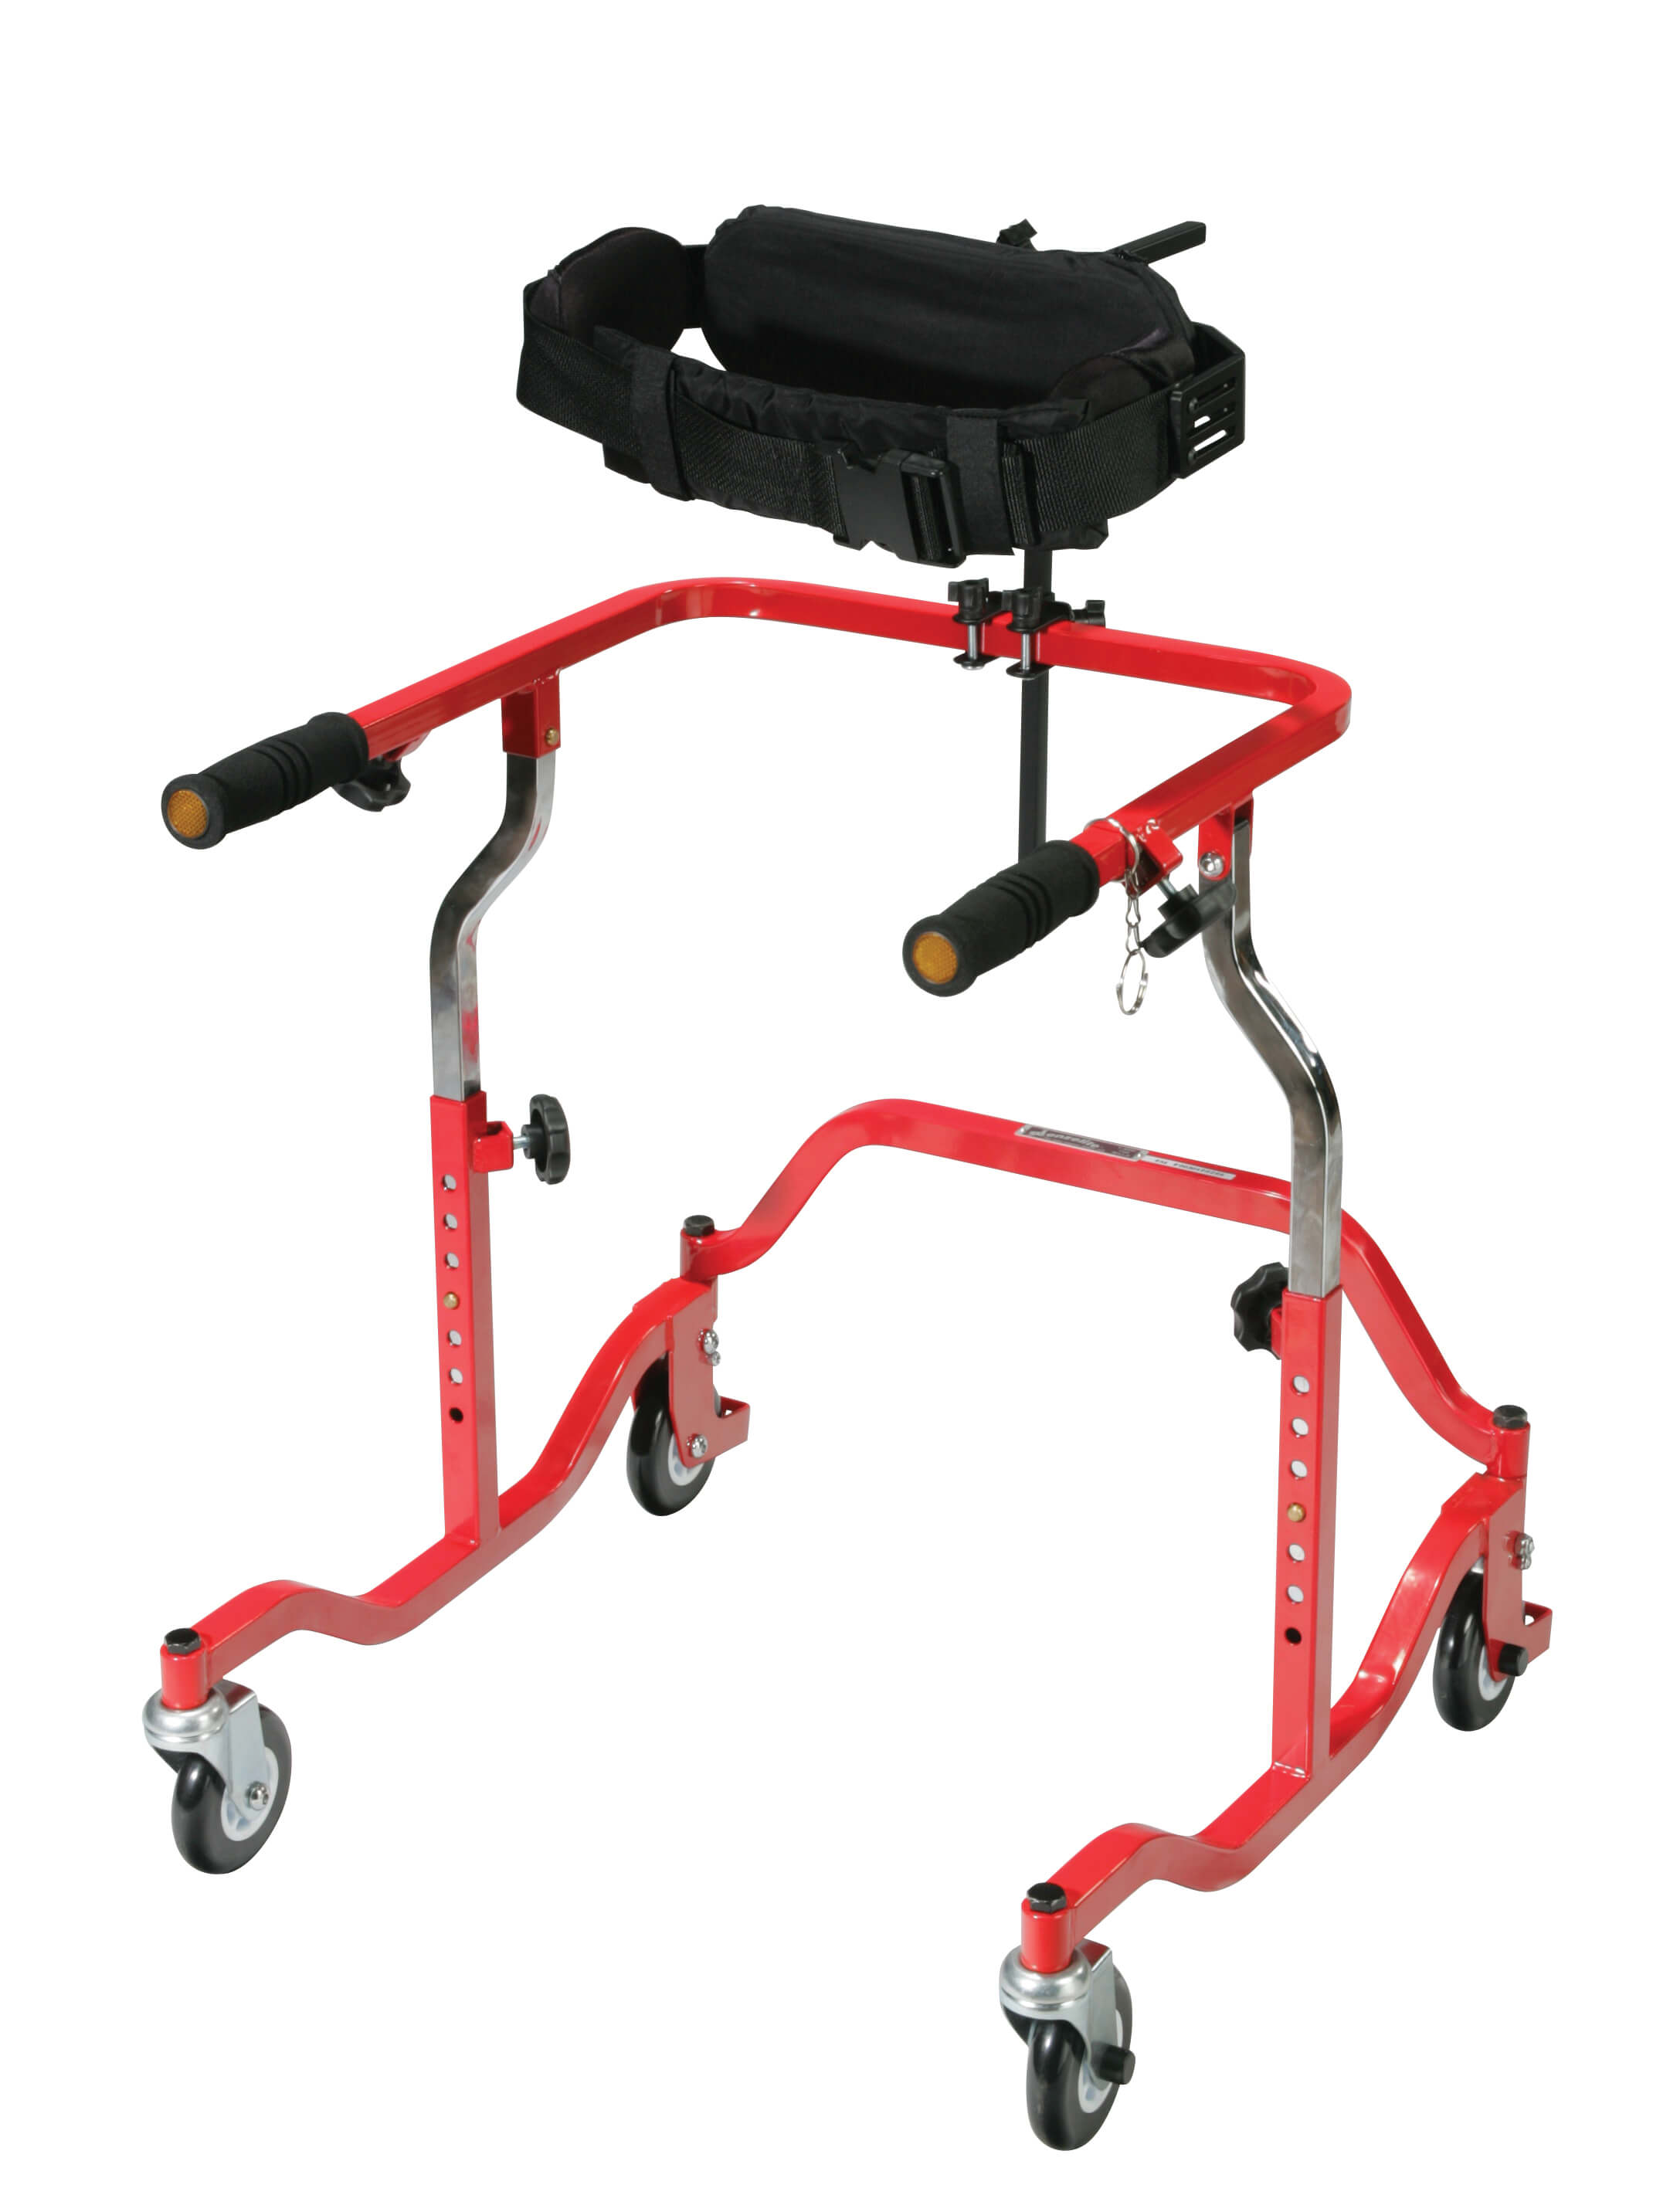 Trunk Support for Adult Safety Rollers, Small